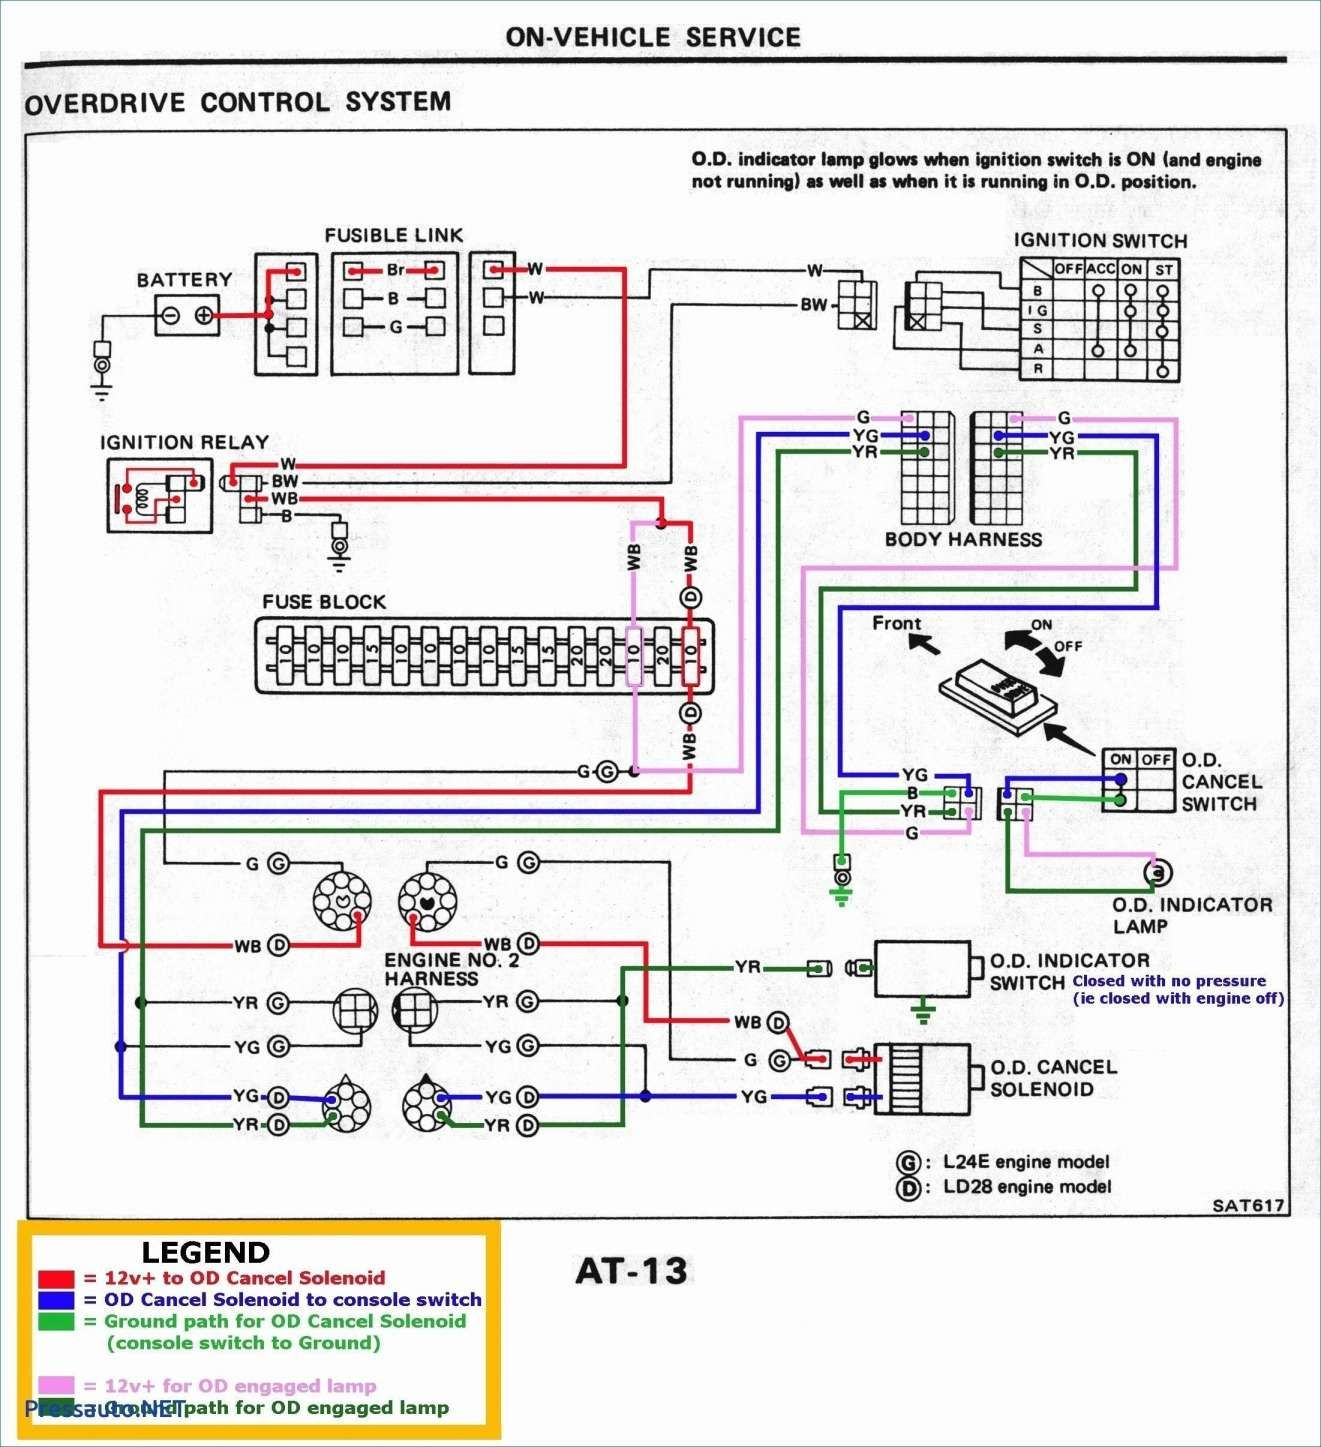 10 Bmw E46 Electric Seat Wiring Diagram Wiring Diagram Wiringg Net Dodge Rams Bmw E46 Engine